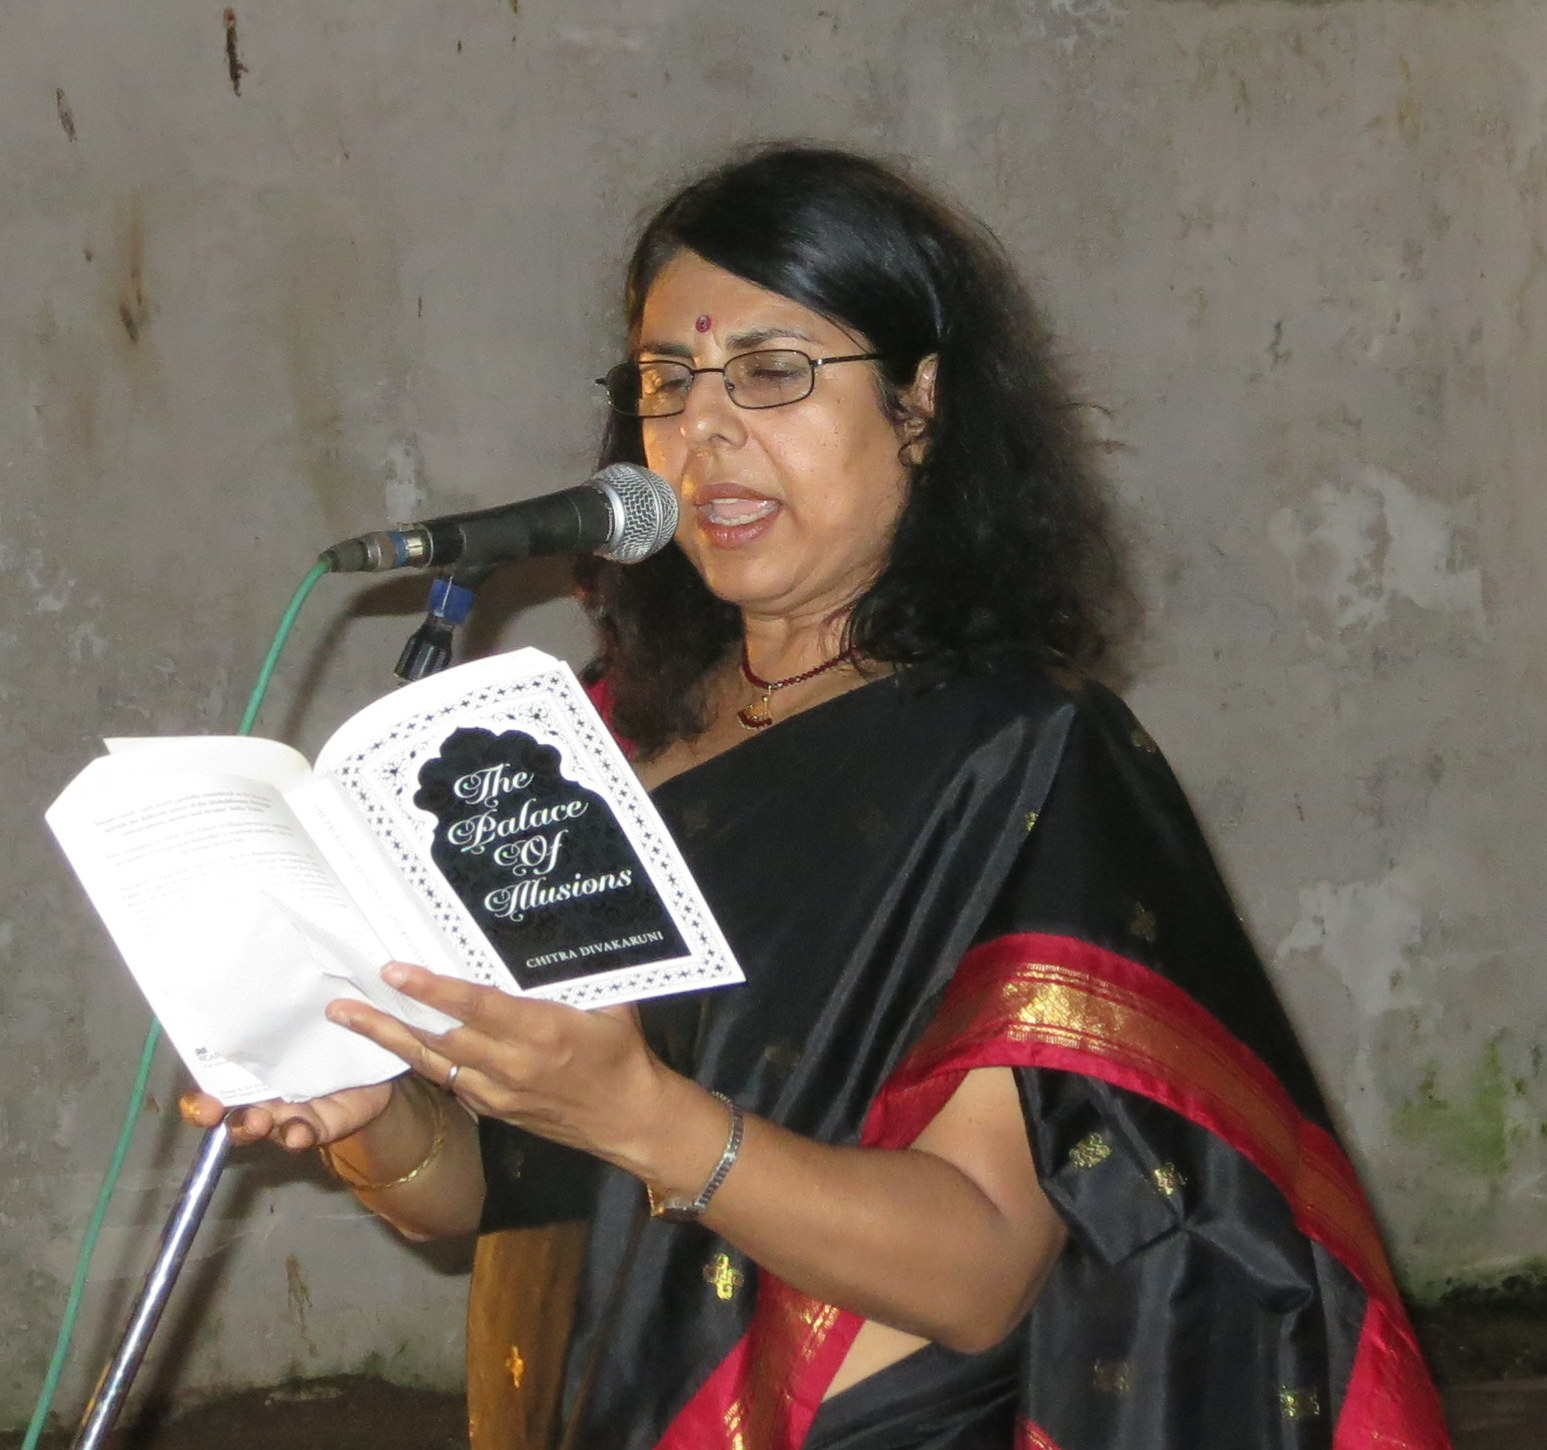 chita banerjee divakaruni author and poet english literature essay Category: literary fiction  the questions, discussion topics and author  biography that follow are designed to  in the mistress of spices, divakaruni  tells the story of tilo, a young woman born in  what passages of the novel  resemble poetry  her doctoral studies in english at the university of california  at berkeley.